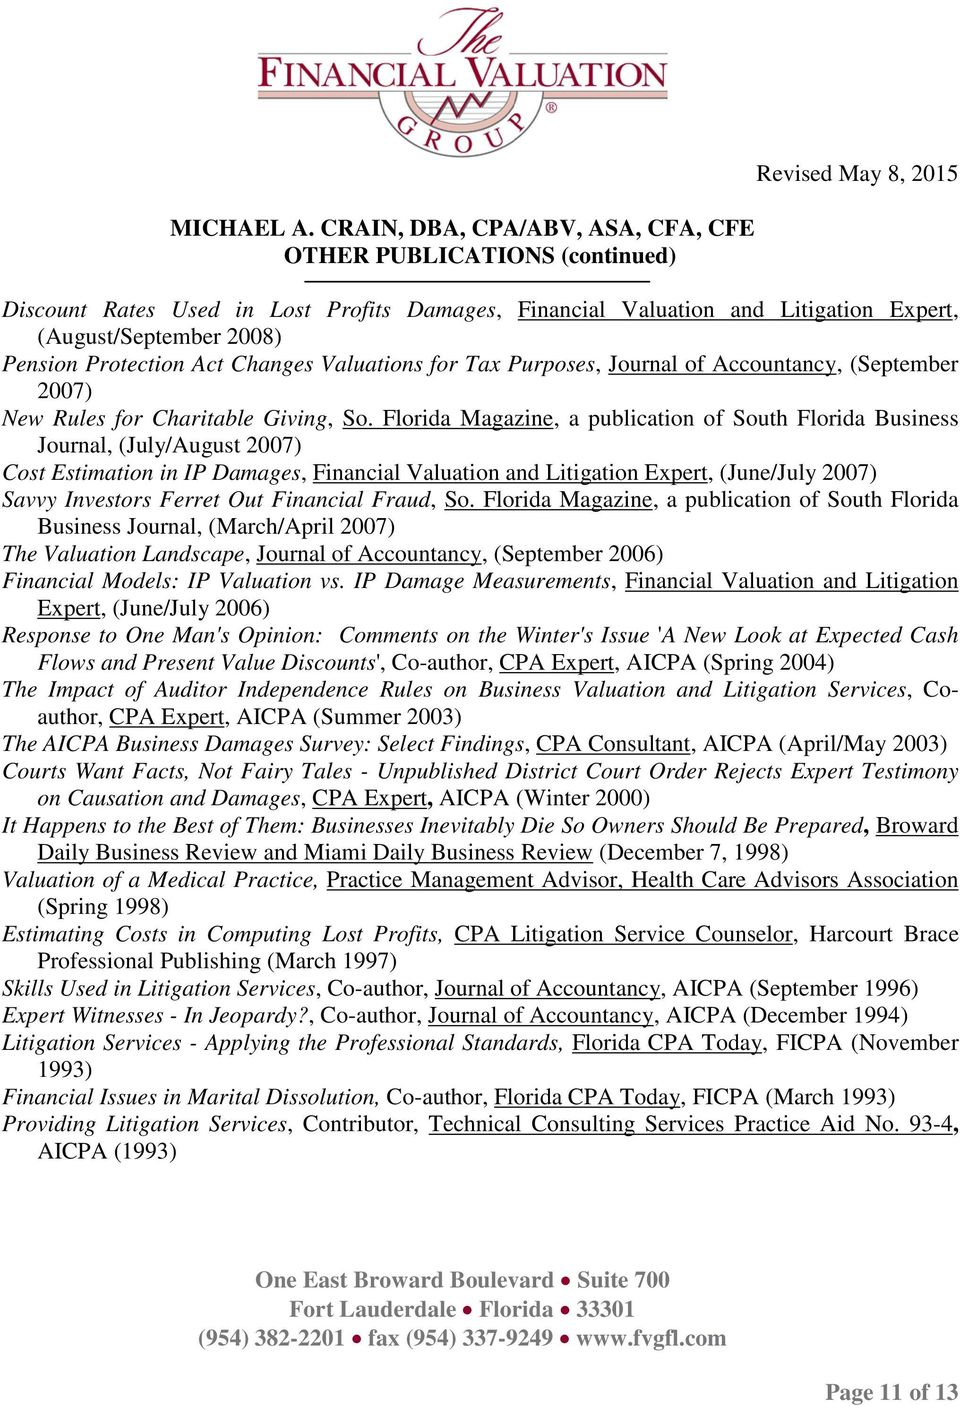 Florida Magazine, a publication of South Florida Business Journal, (July/August 2007) Cost Estimation in IP Damages, Financial Valuation and Litigation Expert, (June/July 2007) Savvy Investors Ferret